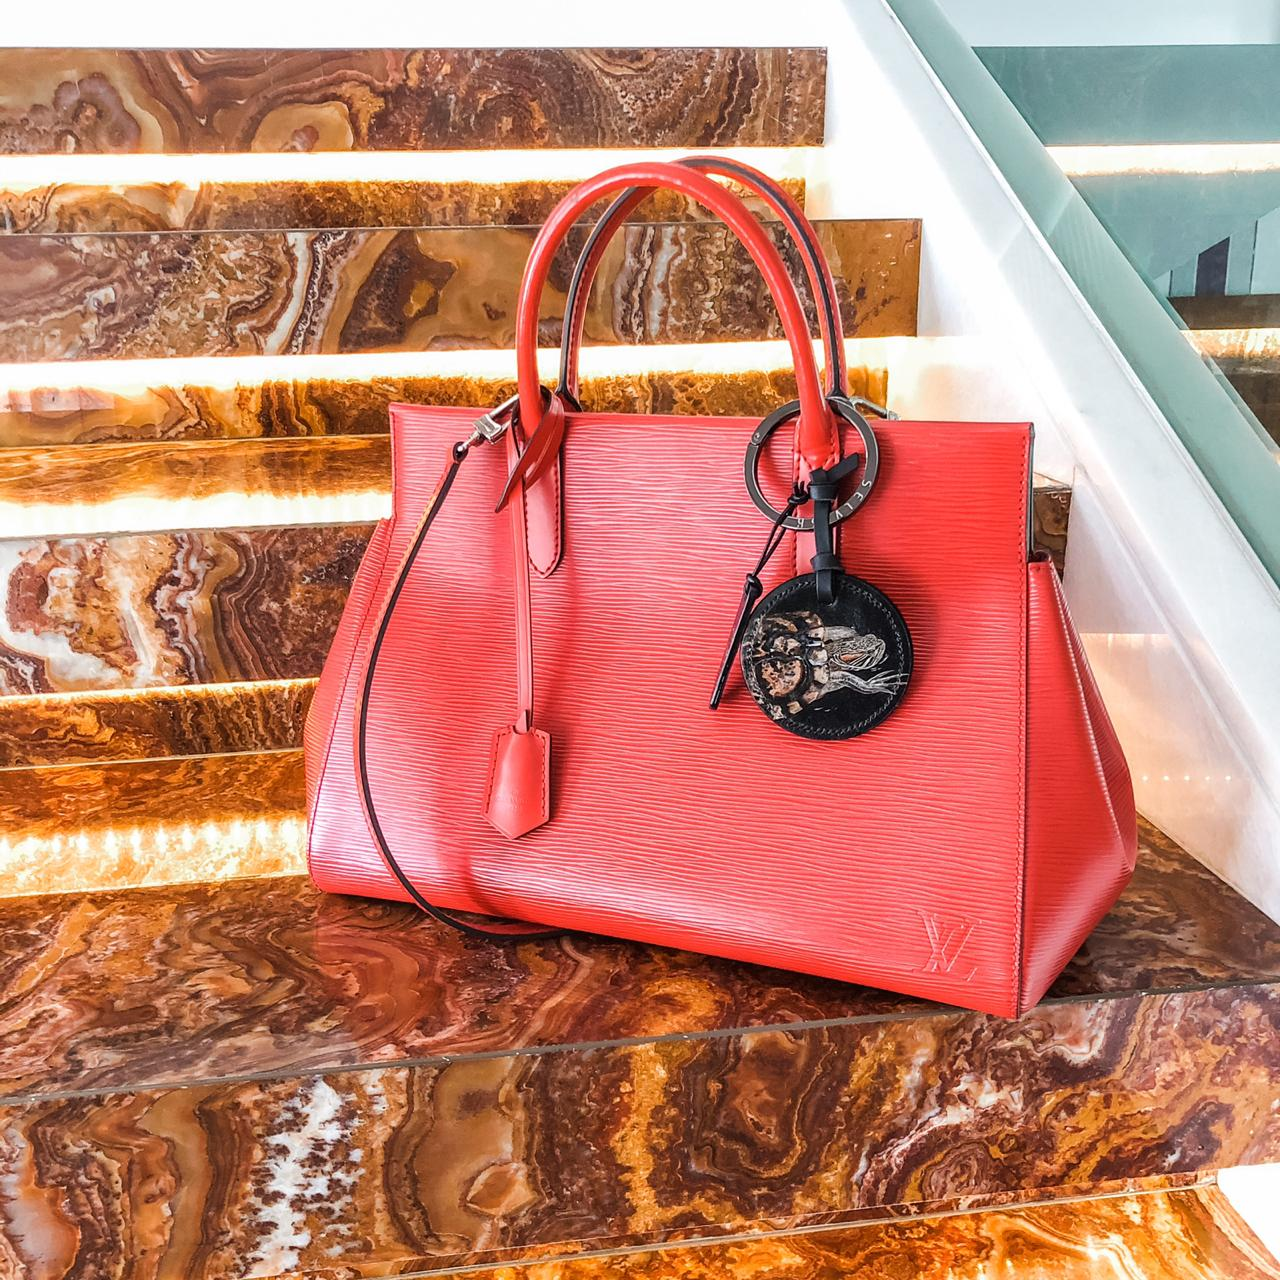 turtle-bag-red